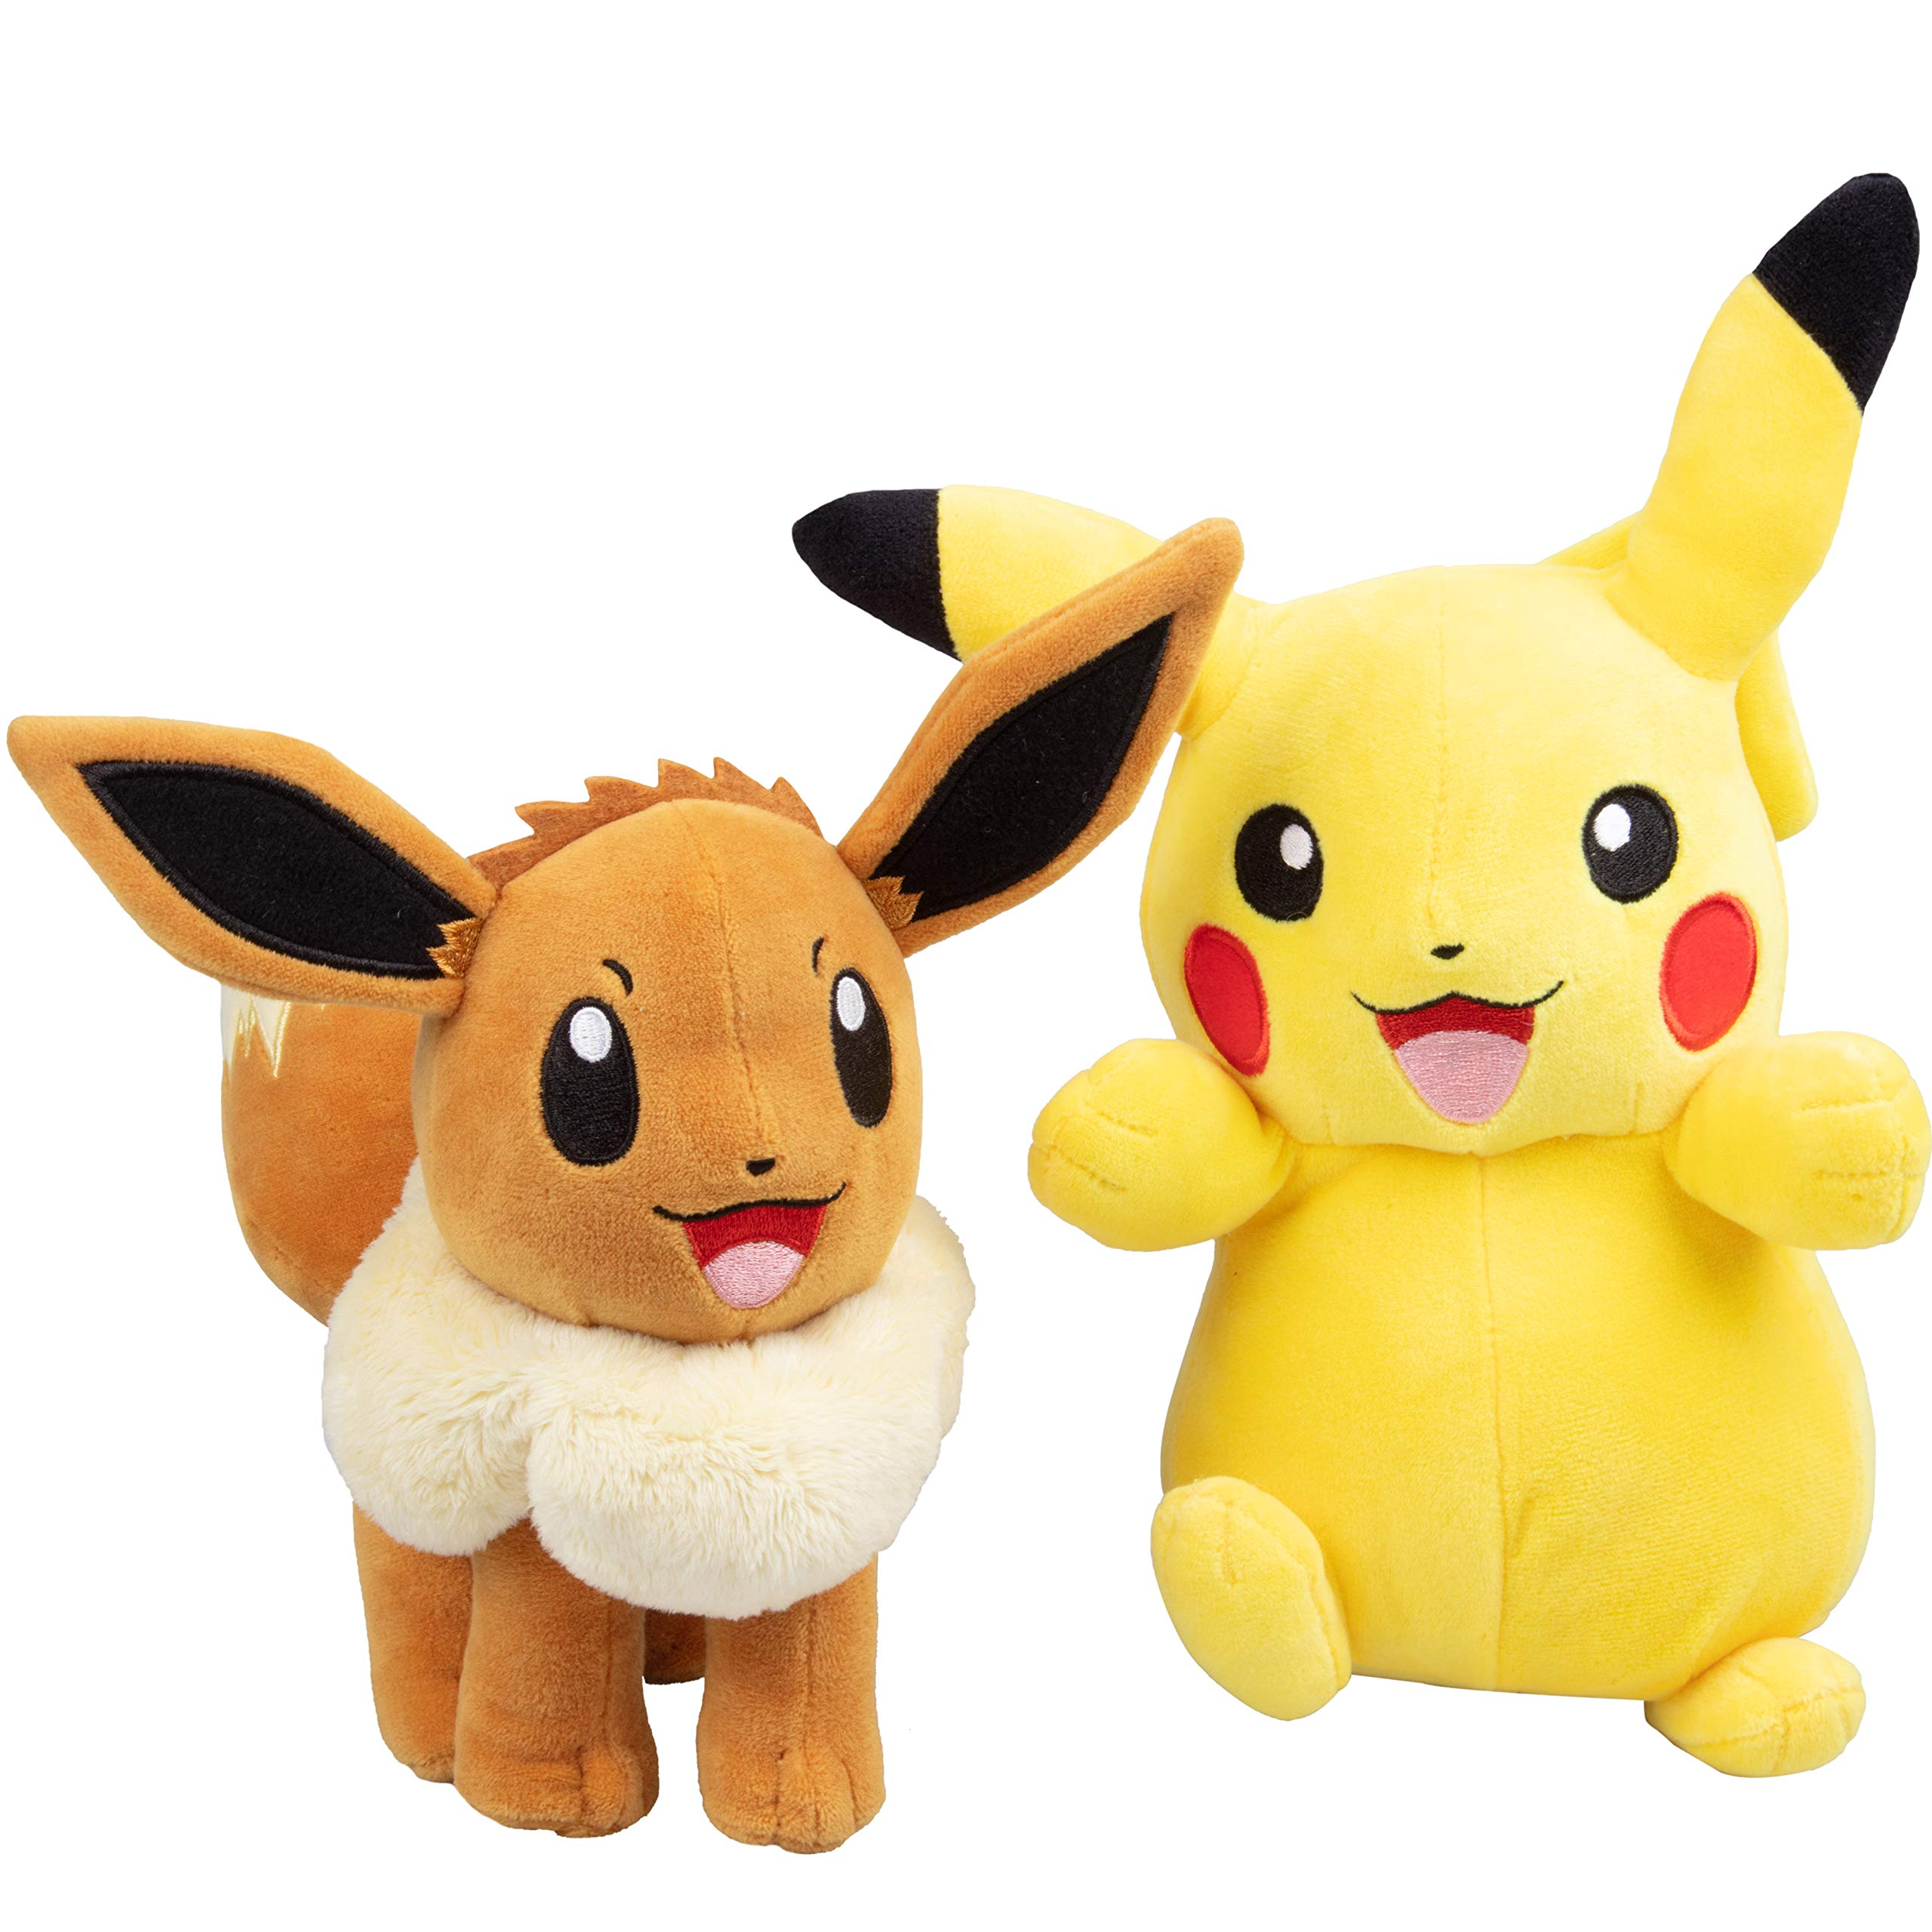 Pokémon Eevee and Pikachu 2 Pack Plush Stuffed Animals 8 Inch by Pokemon